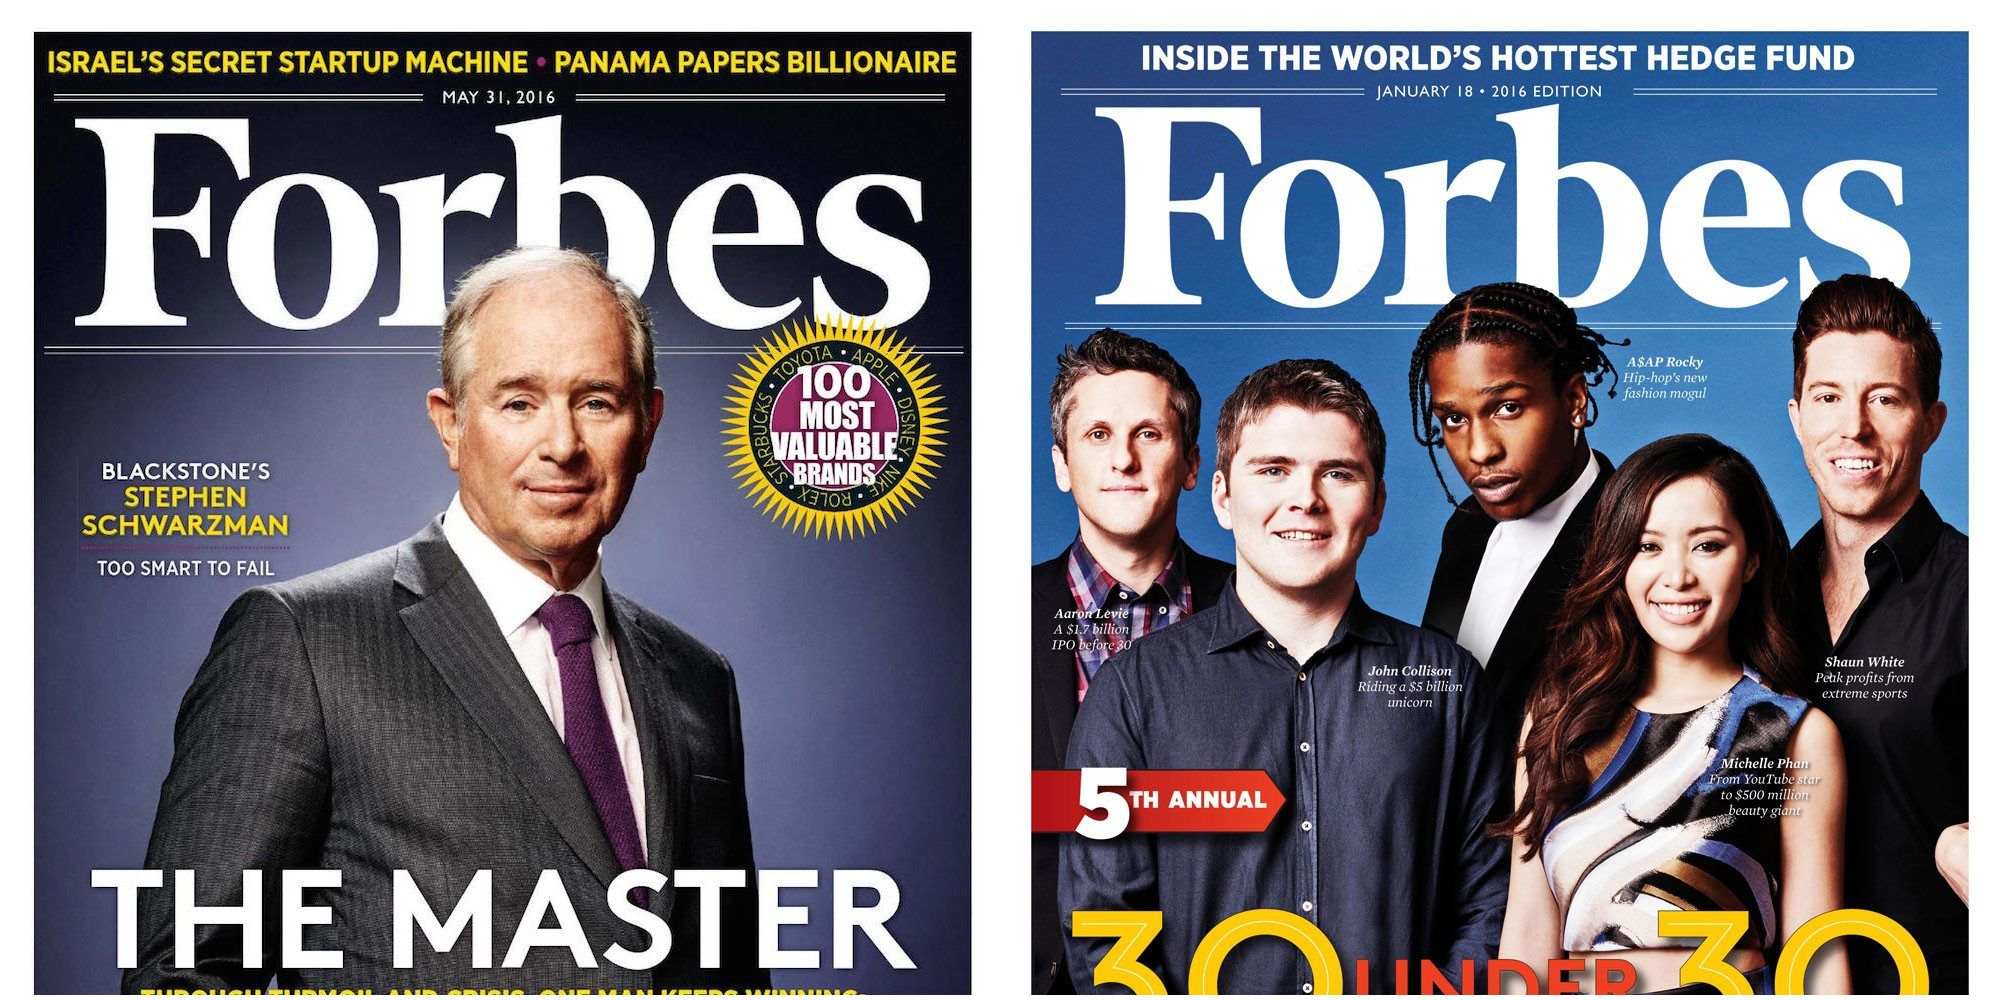 Subscribe to forbes Magazine Get A 1 Yr forbes Magazine Subscription or Renewal for Just $5